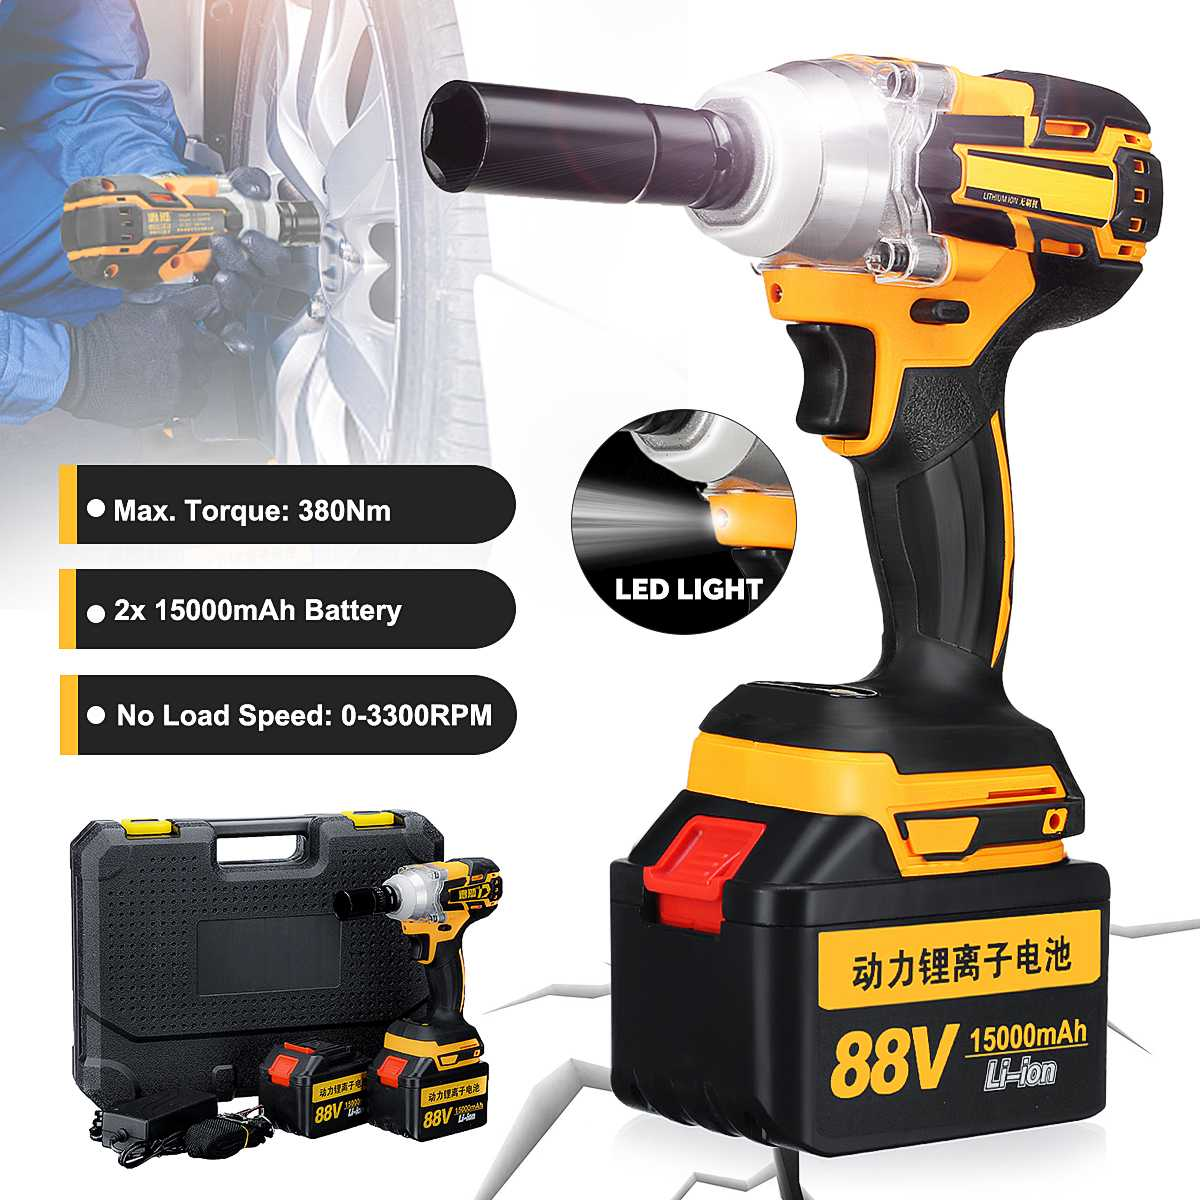 Brushless/ Cordless Electric Wrench Impact Socket Wrench 88V 15000mAh Hand Drill Installation Power Tools With 2 Li BatteriesBrushless/ Cordless Electric Wrench Impact Socket Wrench 88V 15000mAh Hand Drill Installation Power Tools With 2 Li Batteries